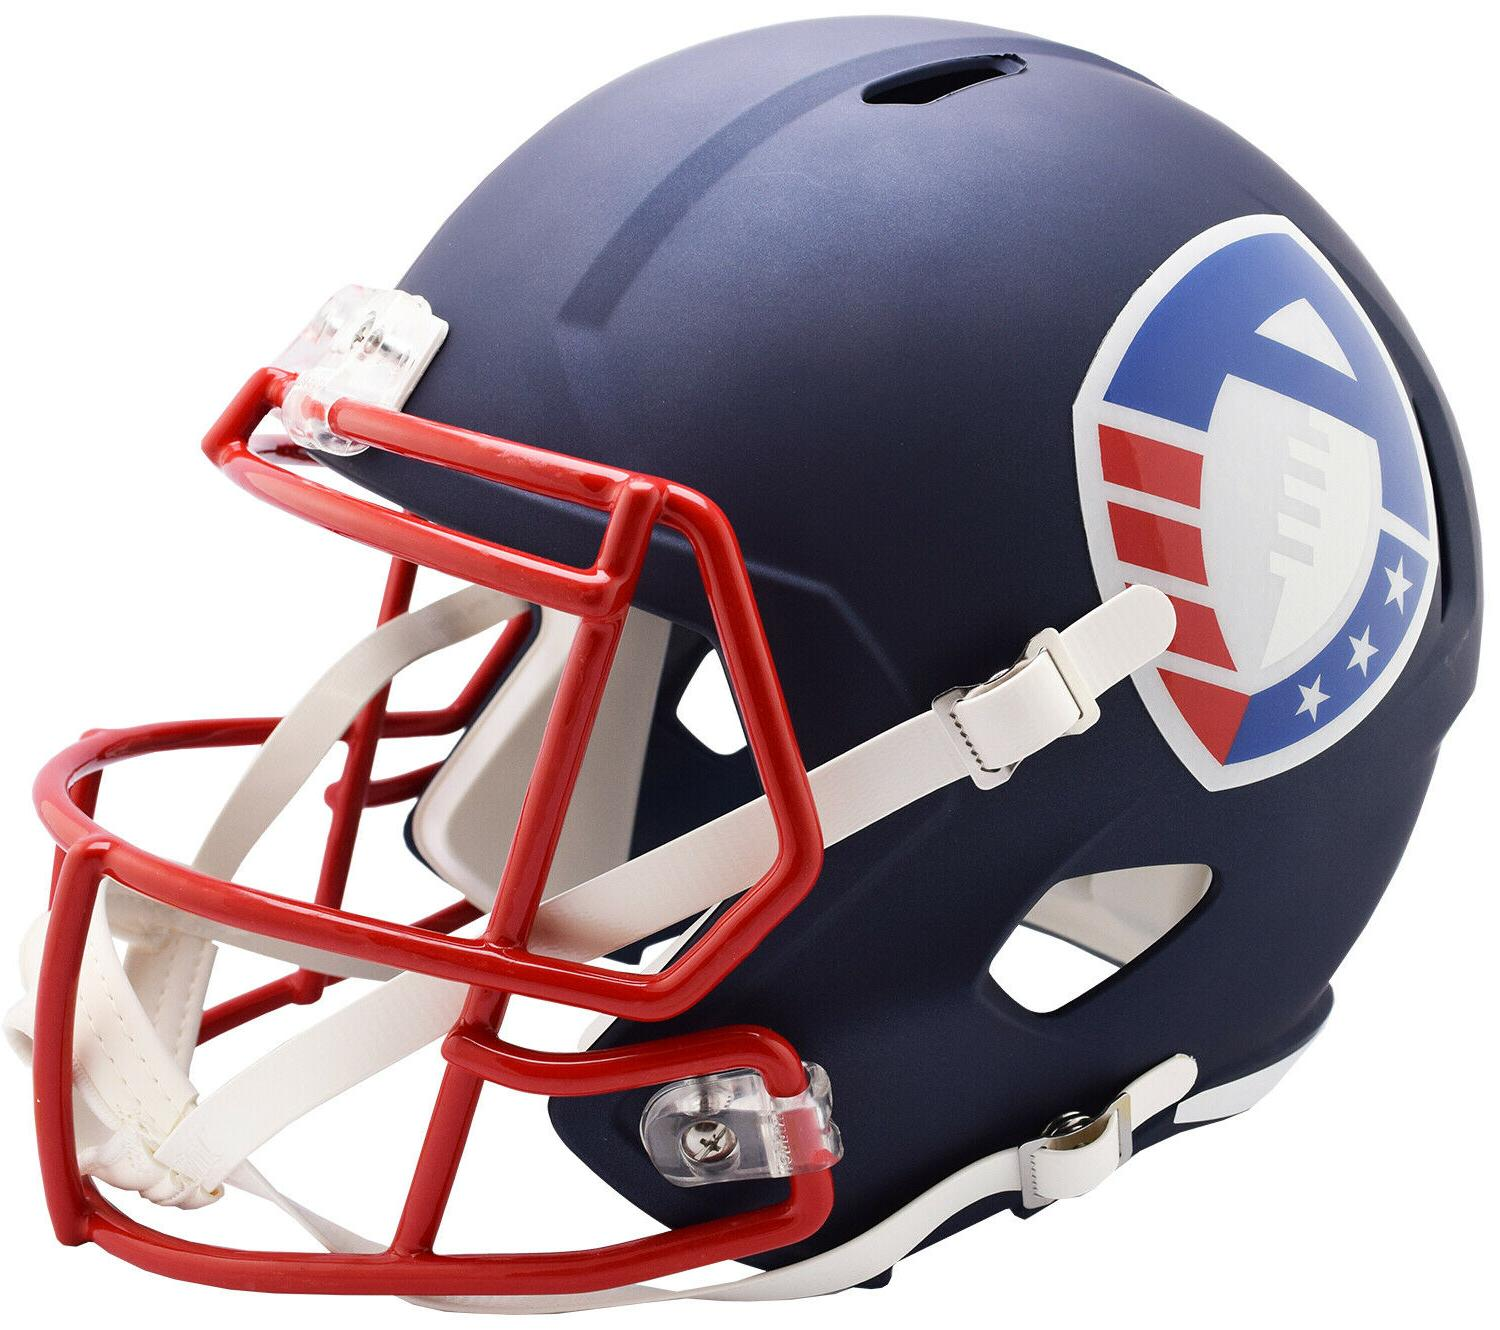 aaf alliance american football speed mini football